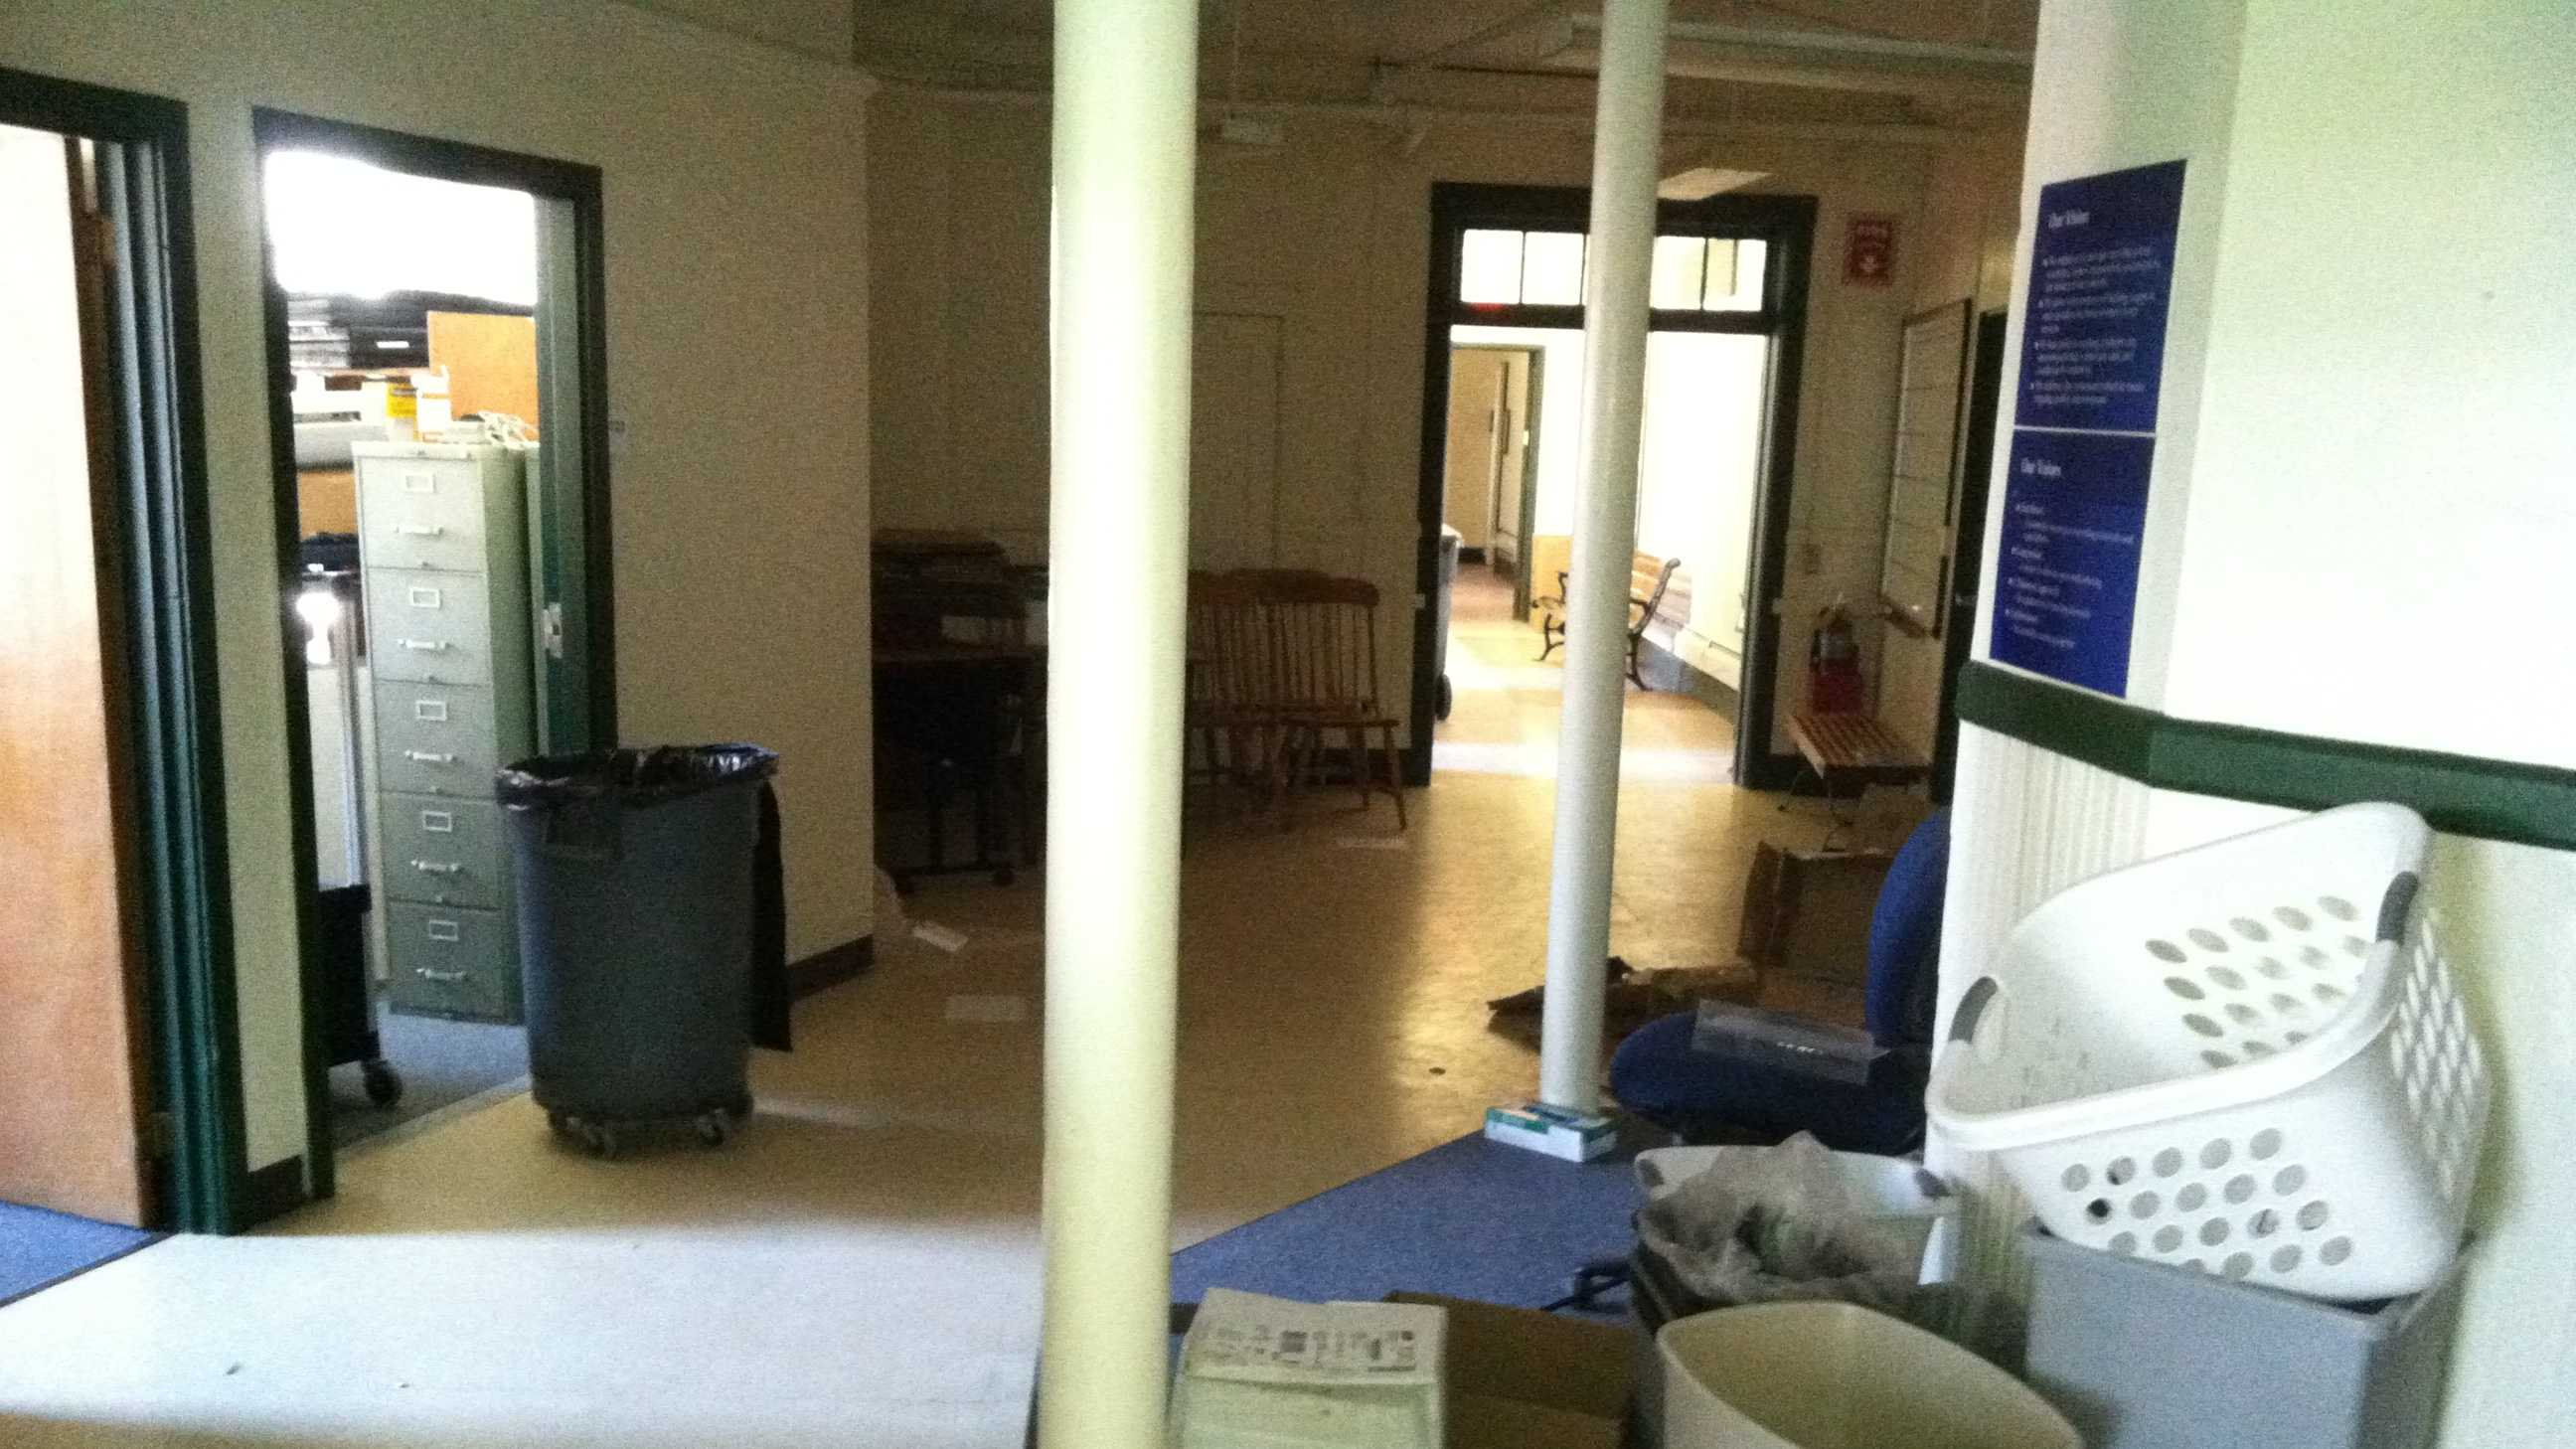 Inside what used to be the Department of Environmental Conservation in Waterbury.